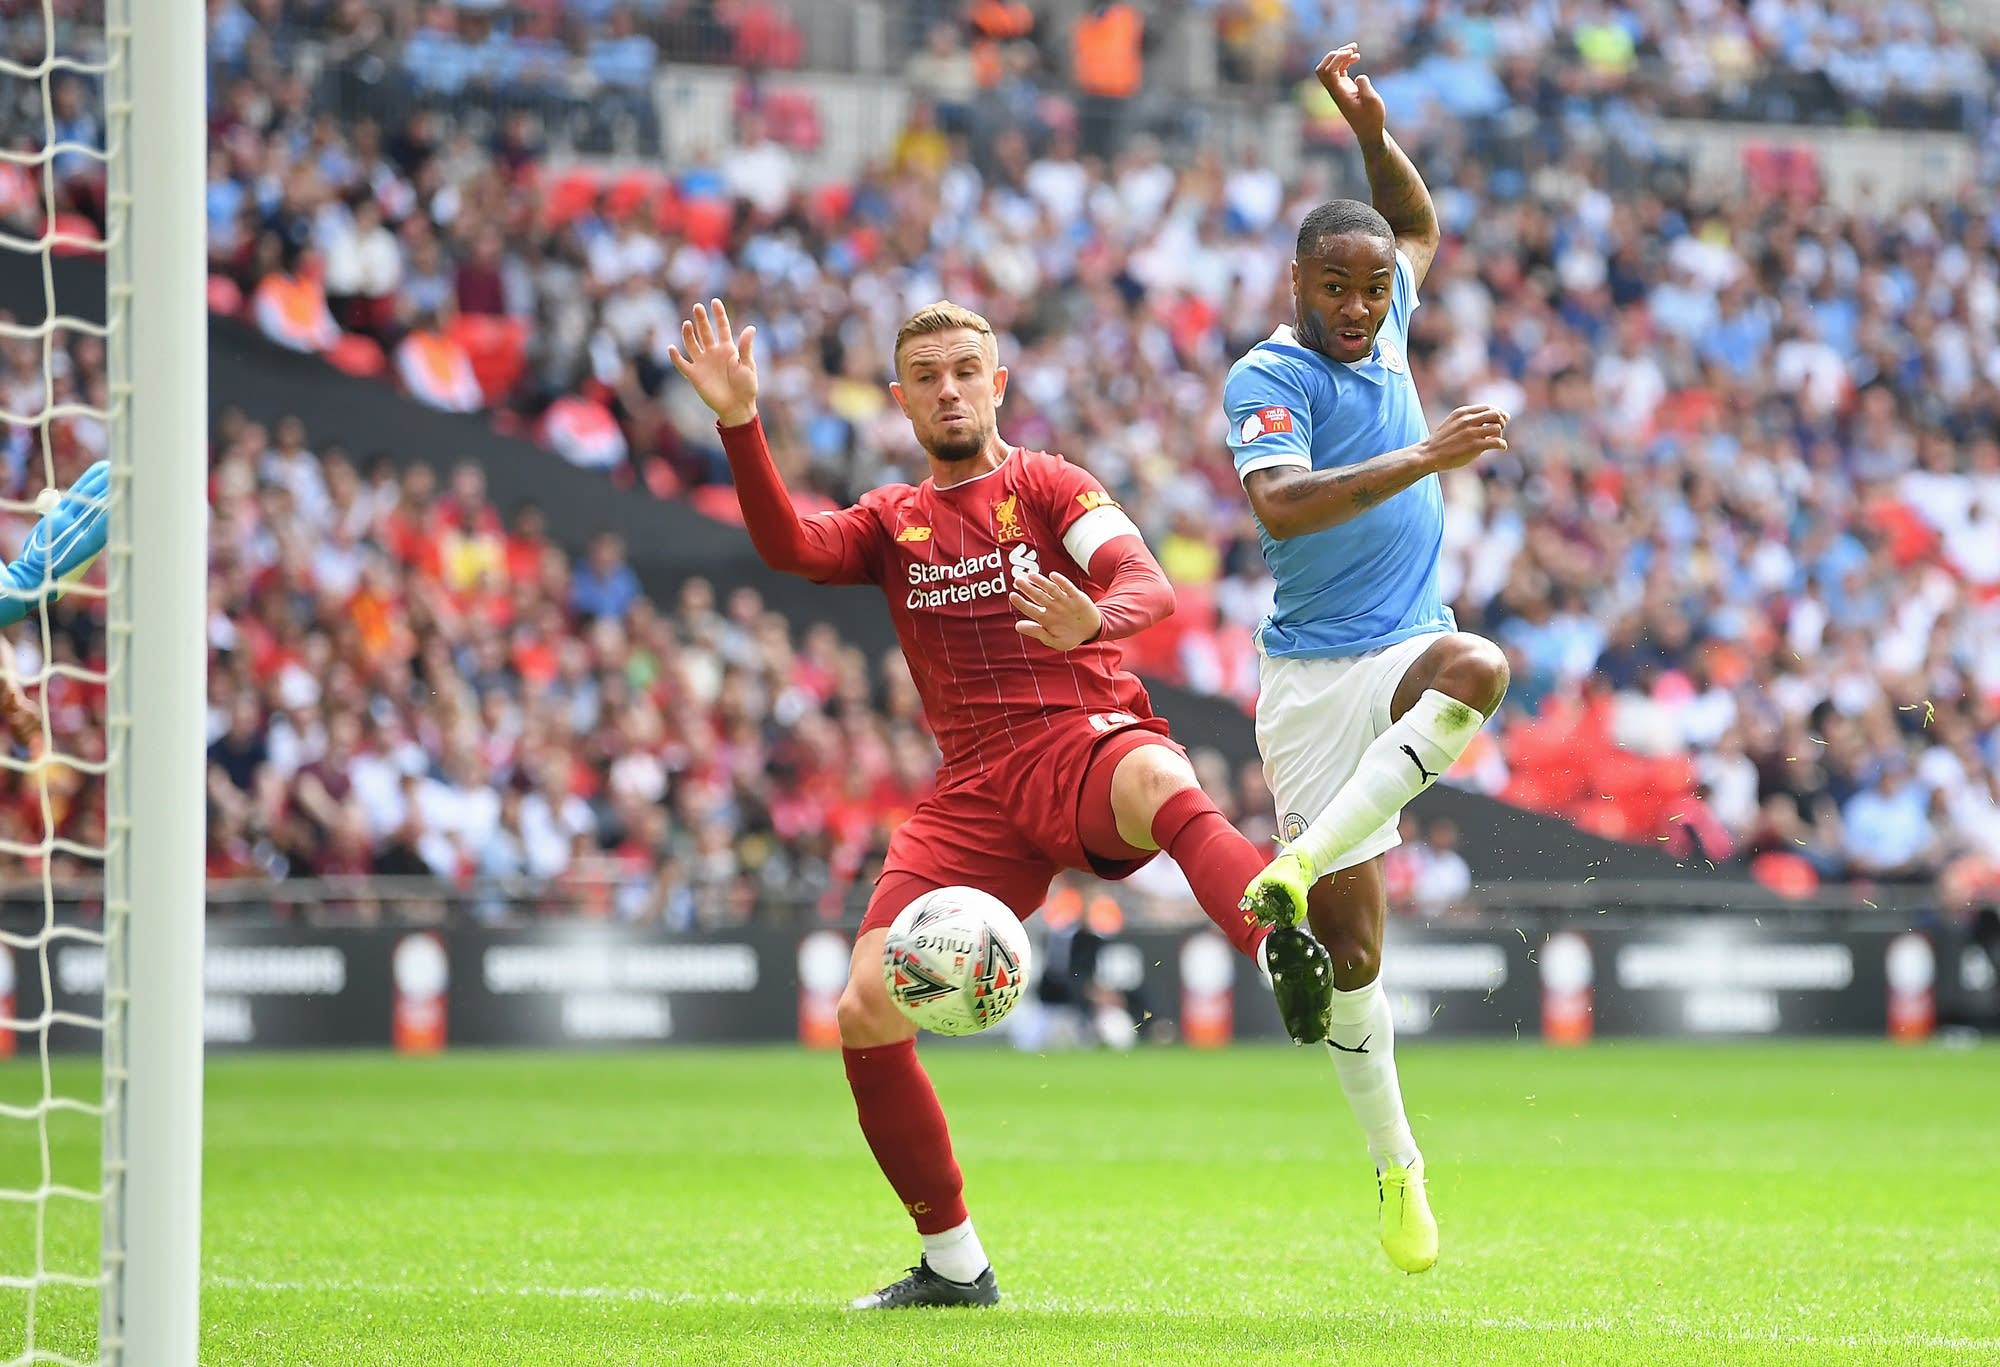 Liverpool v Manchester City in the FA Community Shield match